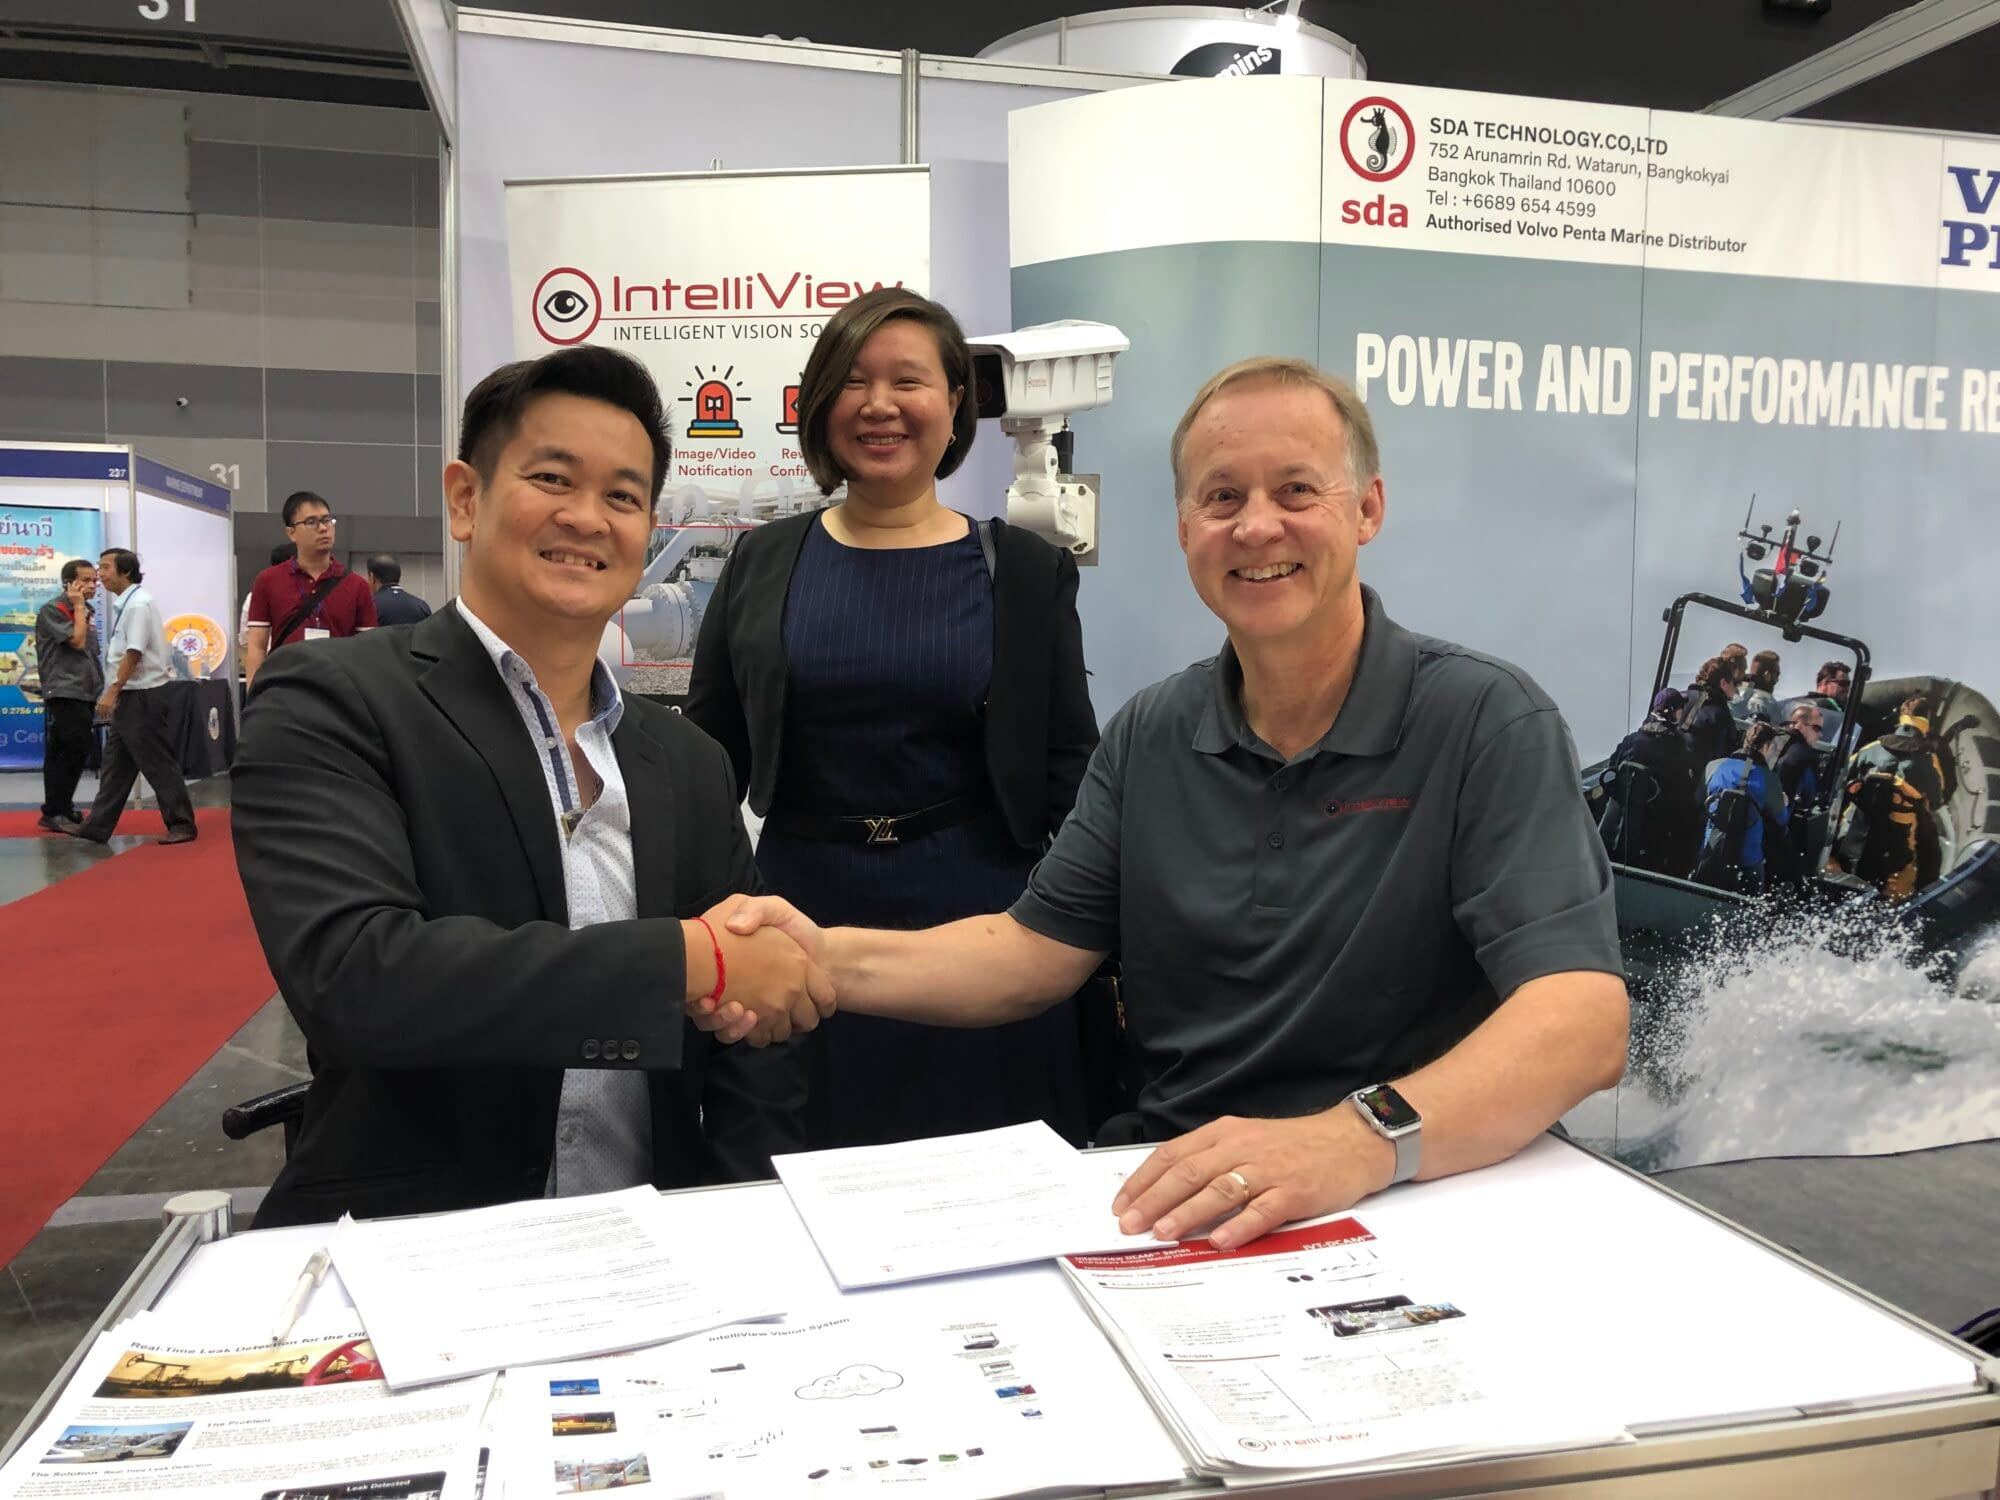 SDA Group Managing Director Warit Decharin, Thailand Trade Commissioner Dolrawee Akarakupt and IntelliView VP Sales and Marketing Chris Beadle get down to business at the Thailand Marine & Offshore Exhibition (TMOX) in Bangkok on October 9-11, 2019.